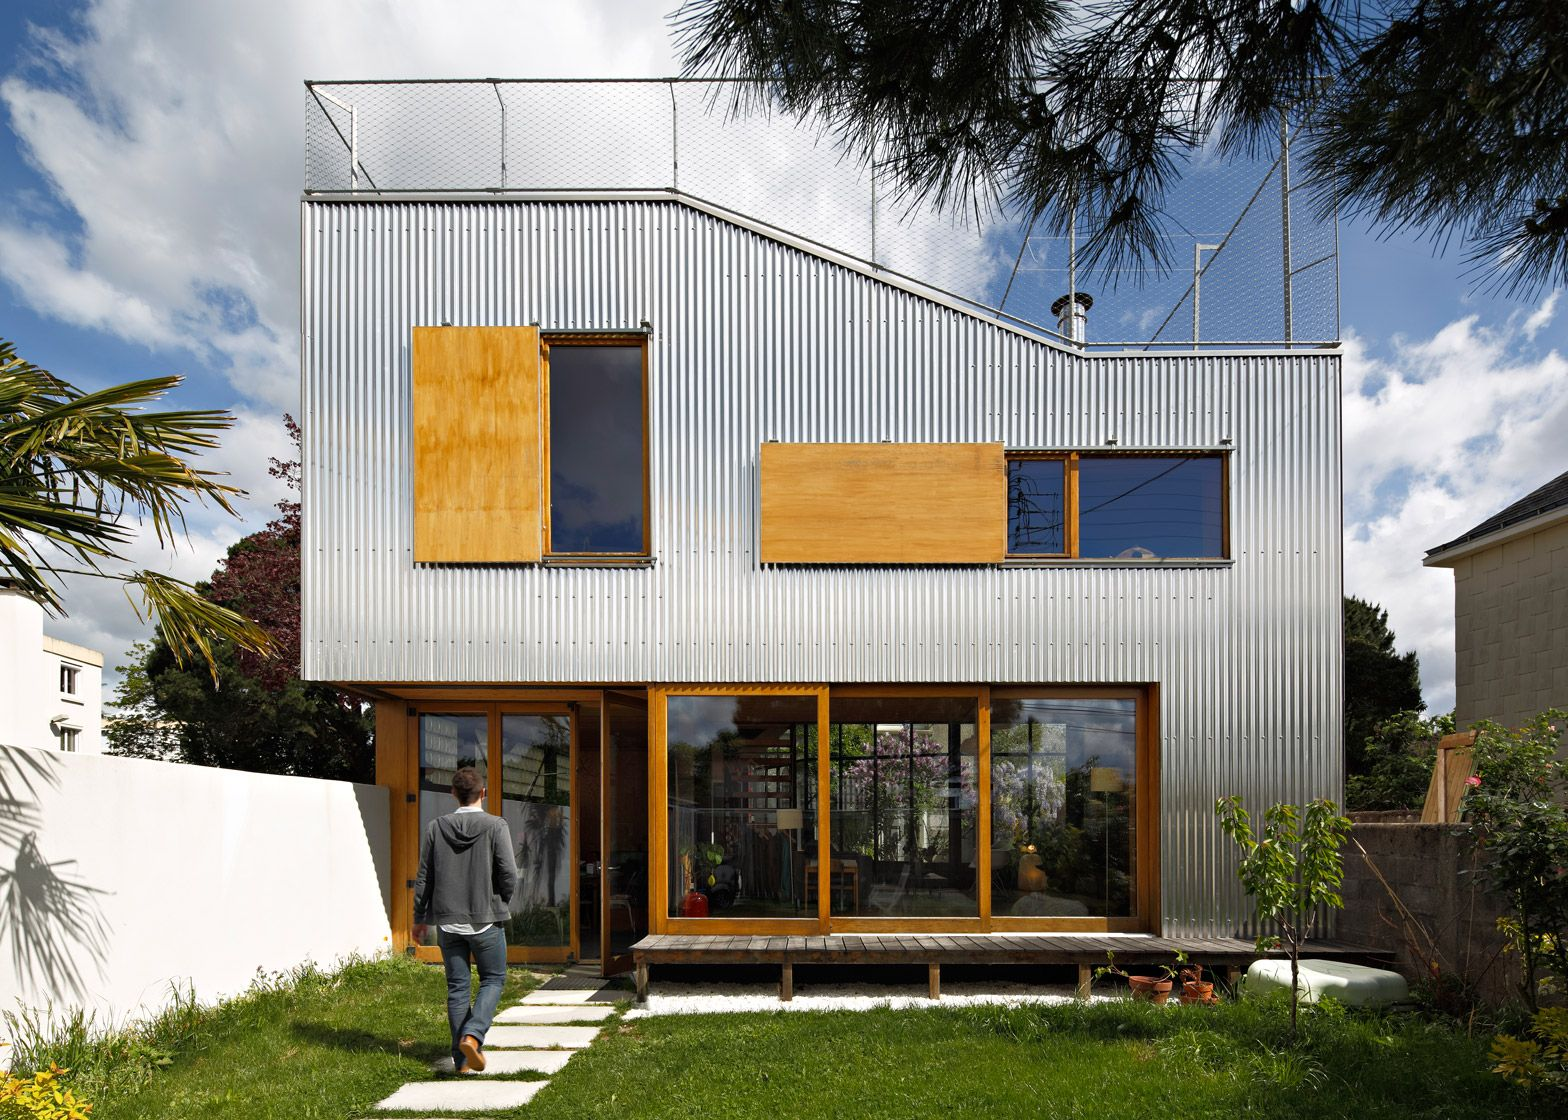 Corrugated Metal Clads The Exterior Of This Extension To A House In The French City Of Nantes Which Has A Decked Terrace Covering Ramen Gevel En Afbeeldingen